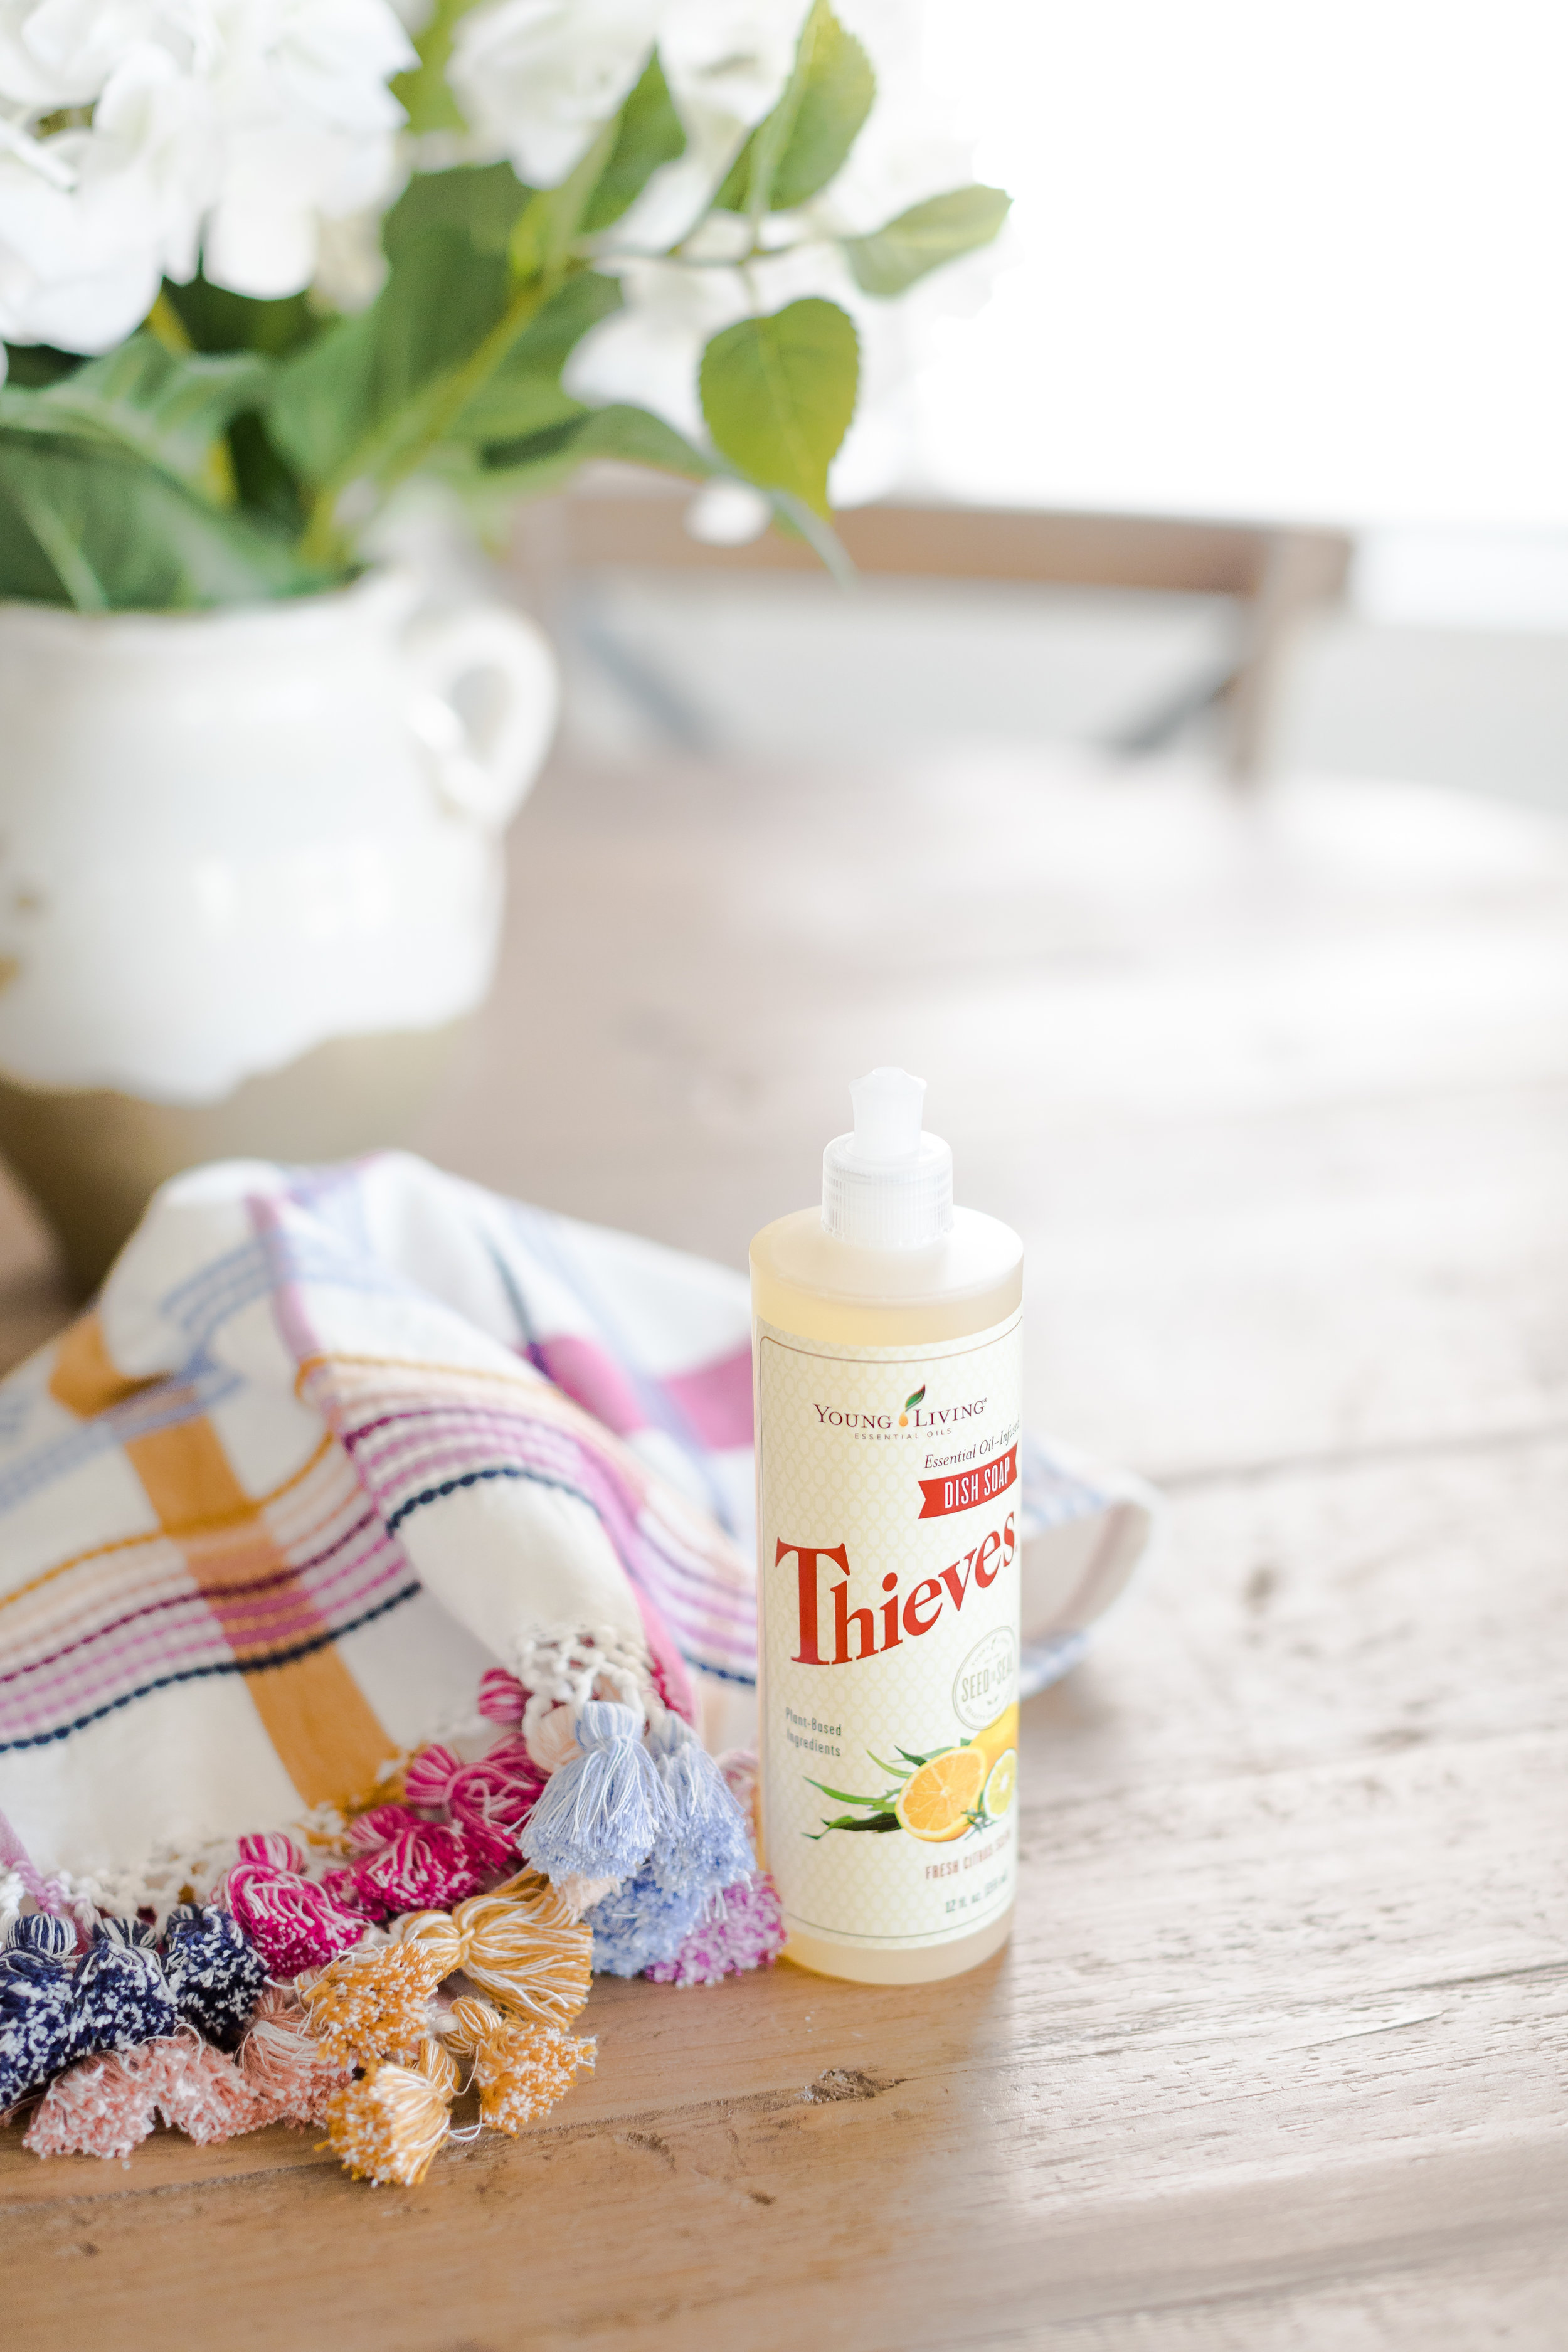 Young Living Thieves dish soap for a healthy home